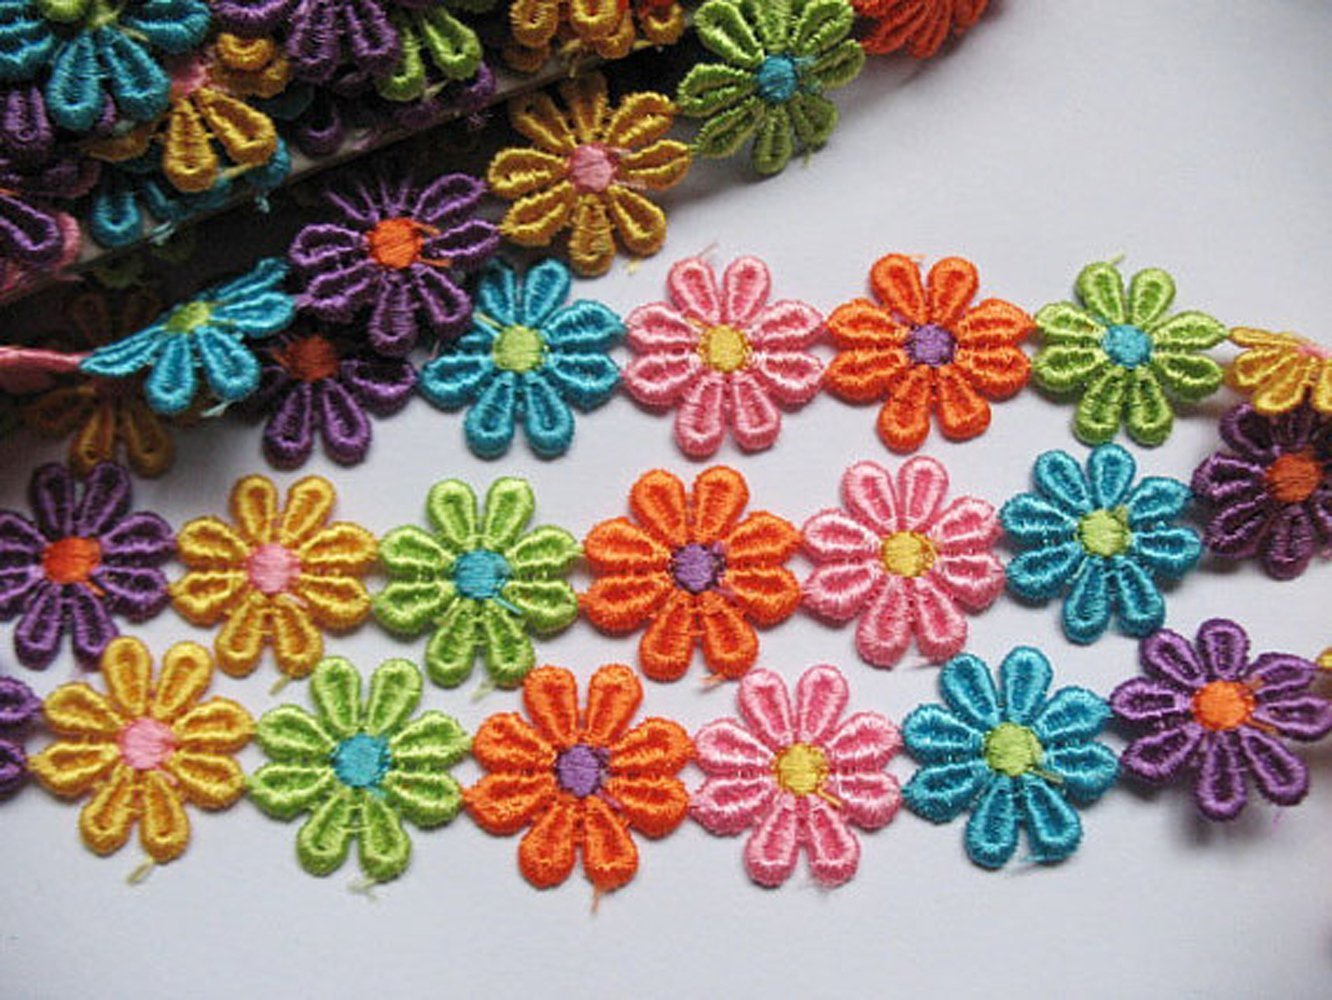 YYCRAFT Pack of 3y Colorful Venise Lace 1 1//8 Flower Trim